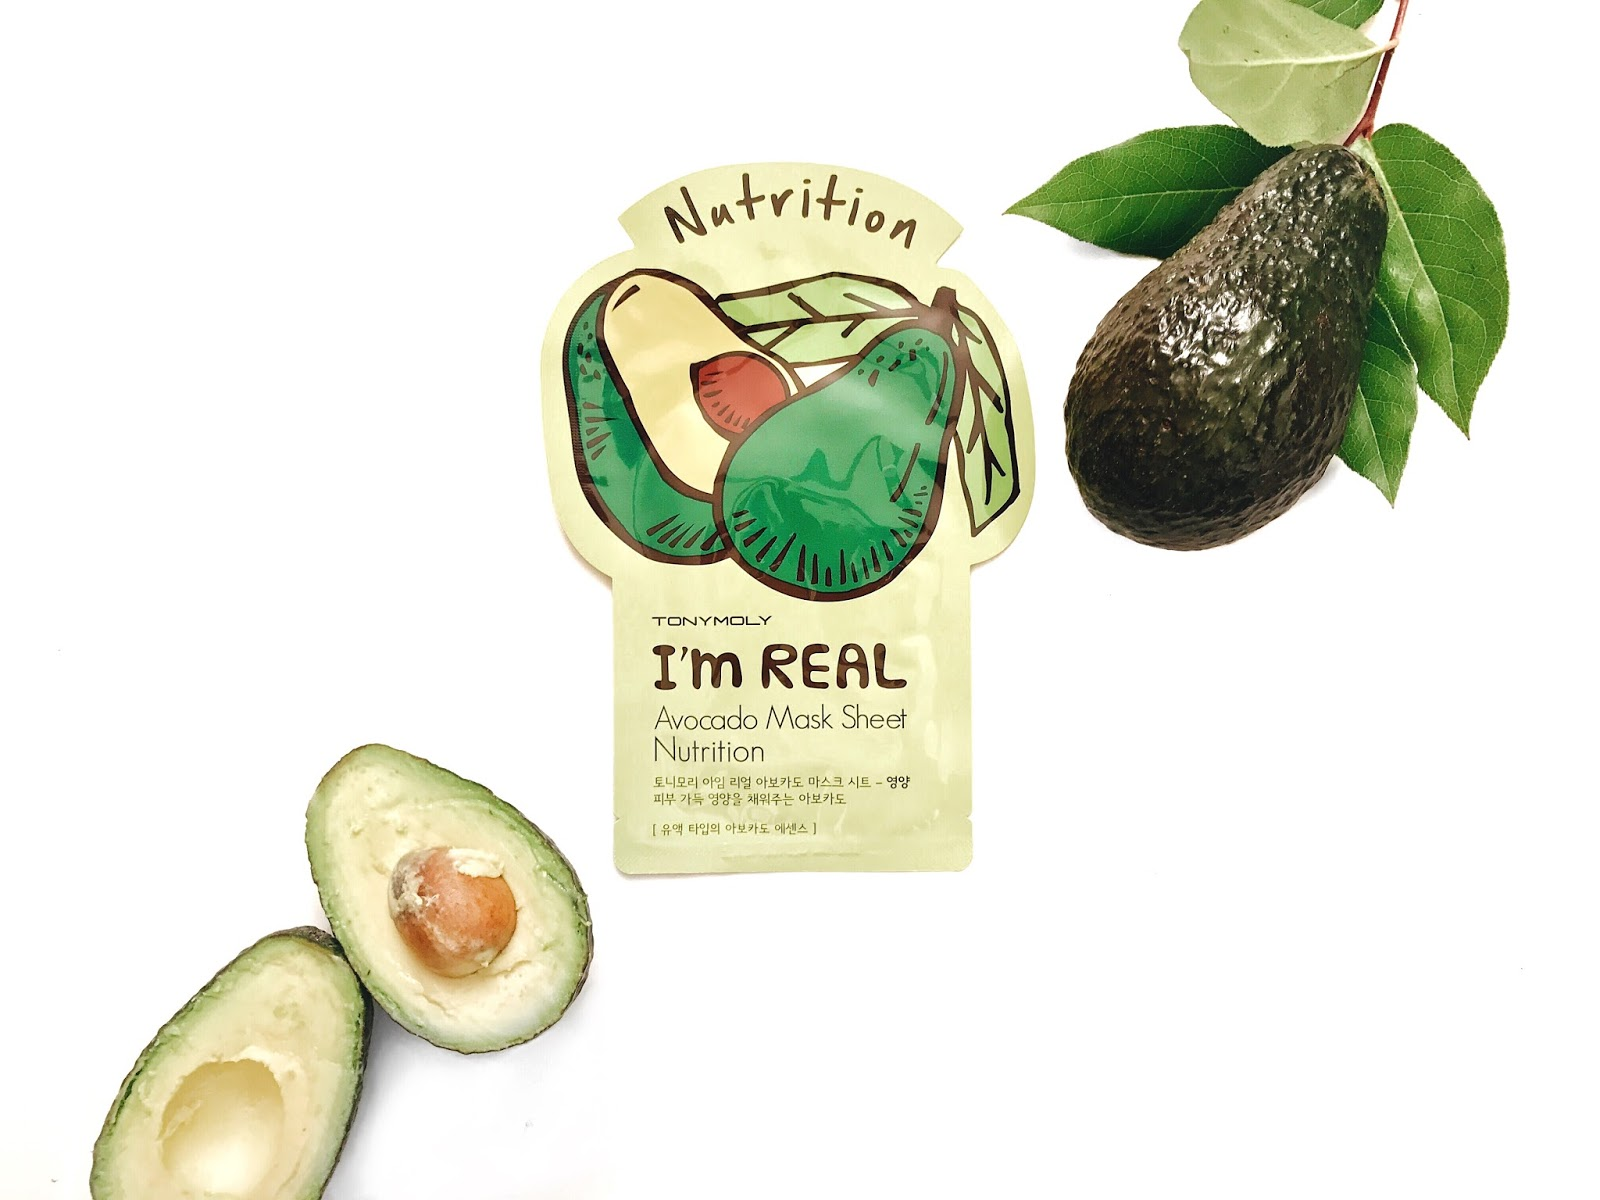 Tony Moly It's Real Avocado Nutrition Sheet Mask reviewed by The Jen Project